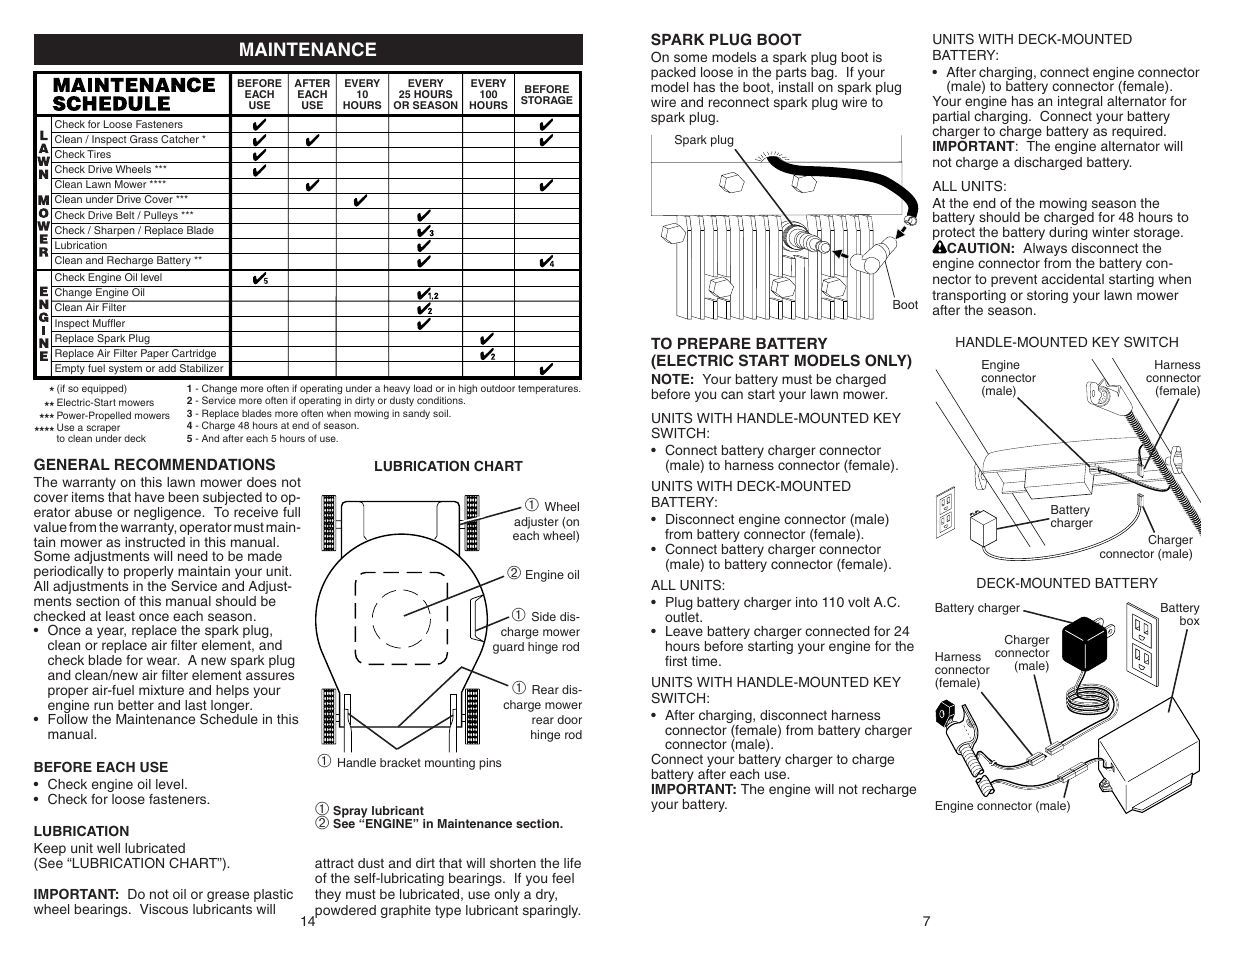 poulan pro lawn mower wiring diagram wiring diagram specialtiesmaintenance poulan pro pr625y22rkp lawn mower user manual page 7